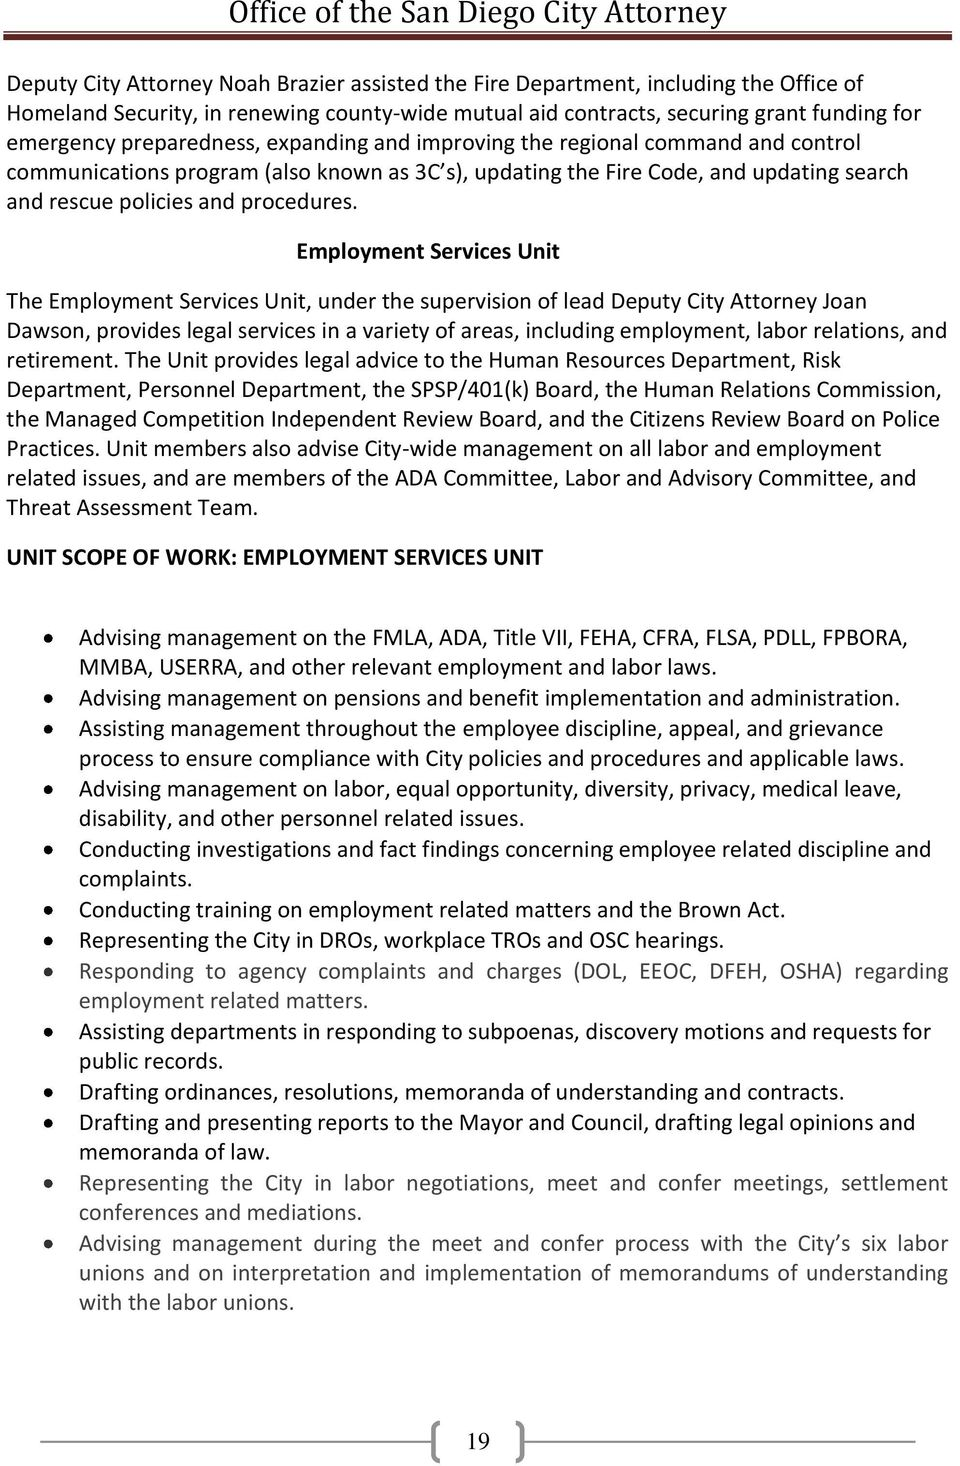 Employment Services Unit The Employment Services Unit, under the supervision of lead Deputy City Attorney Joan Dawson, provides legal services in a variety of areas, including employment, labor